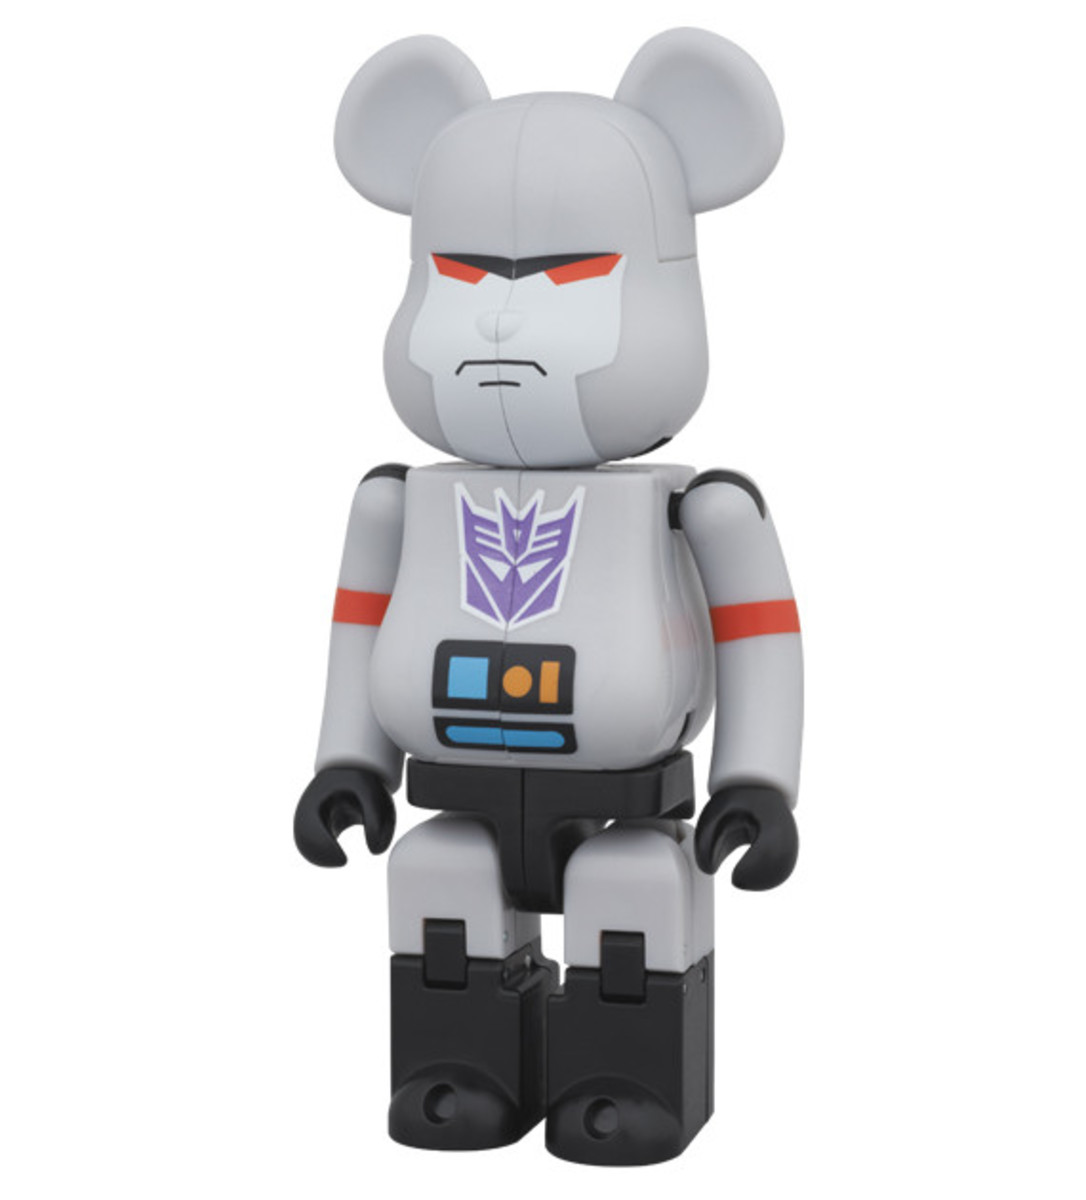 transformers-medicom-toy-transformable-bearbrick-200-percent-set-04